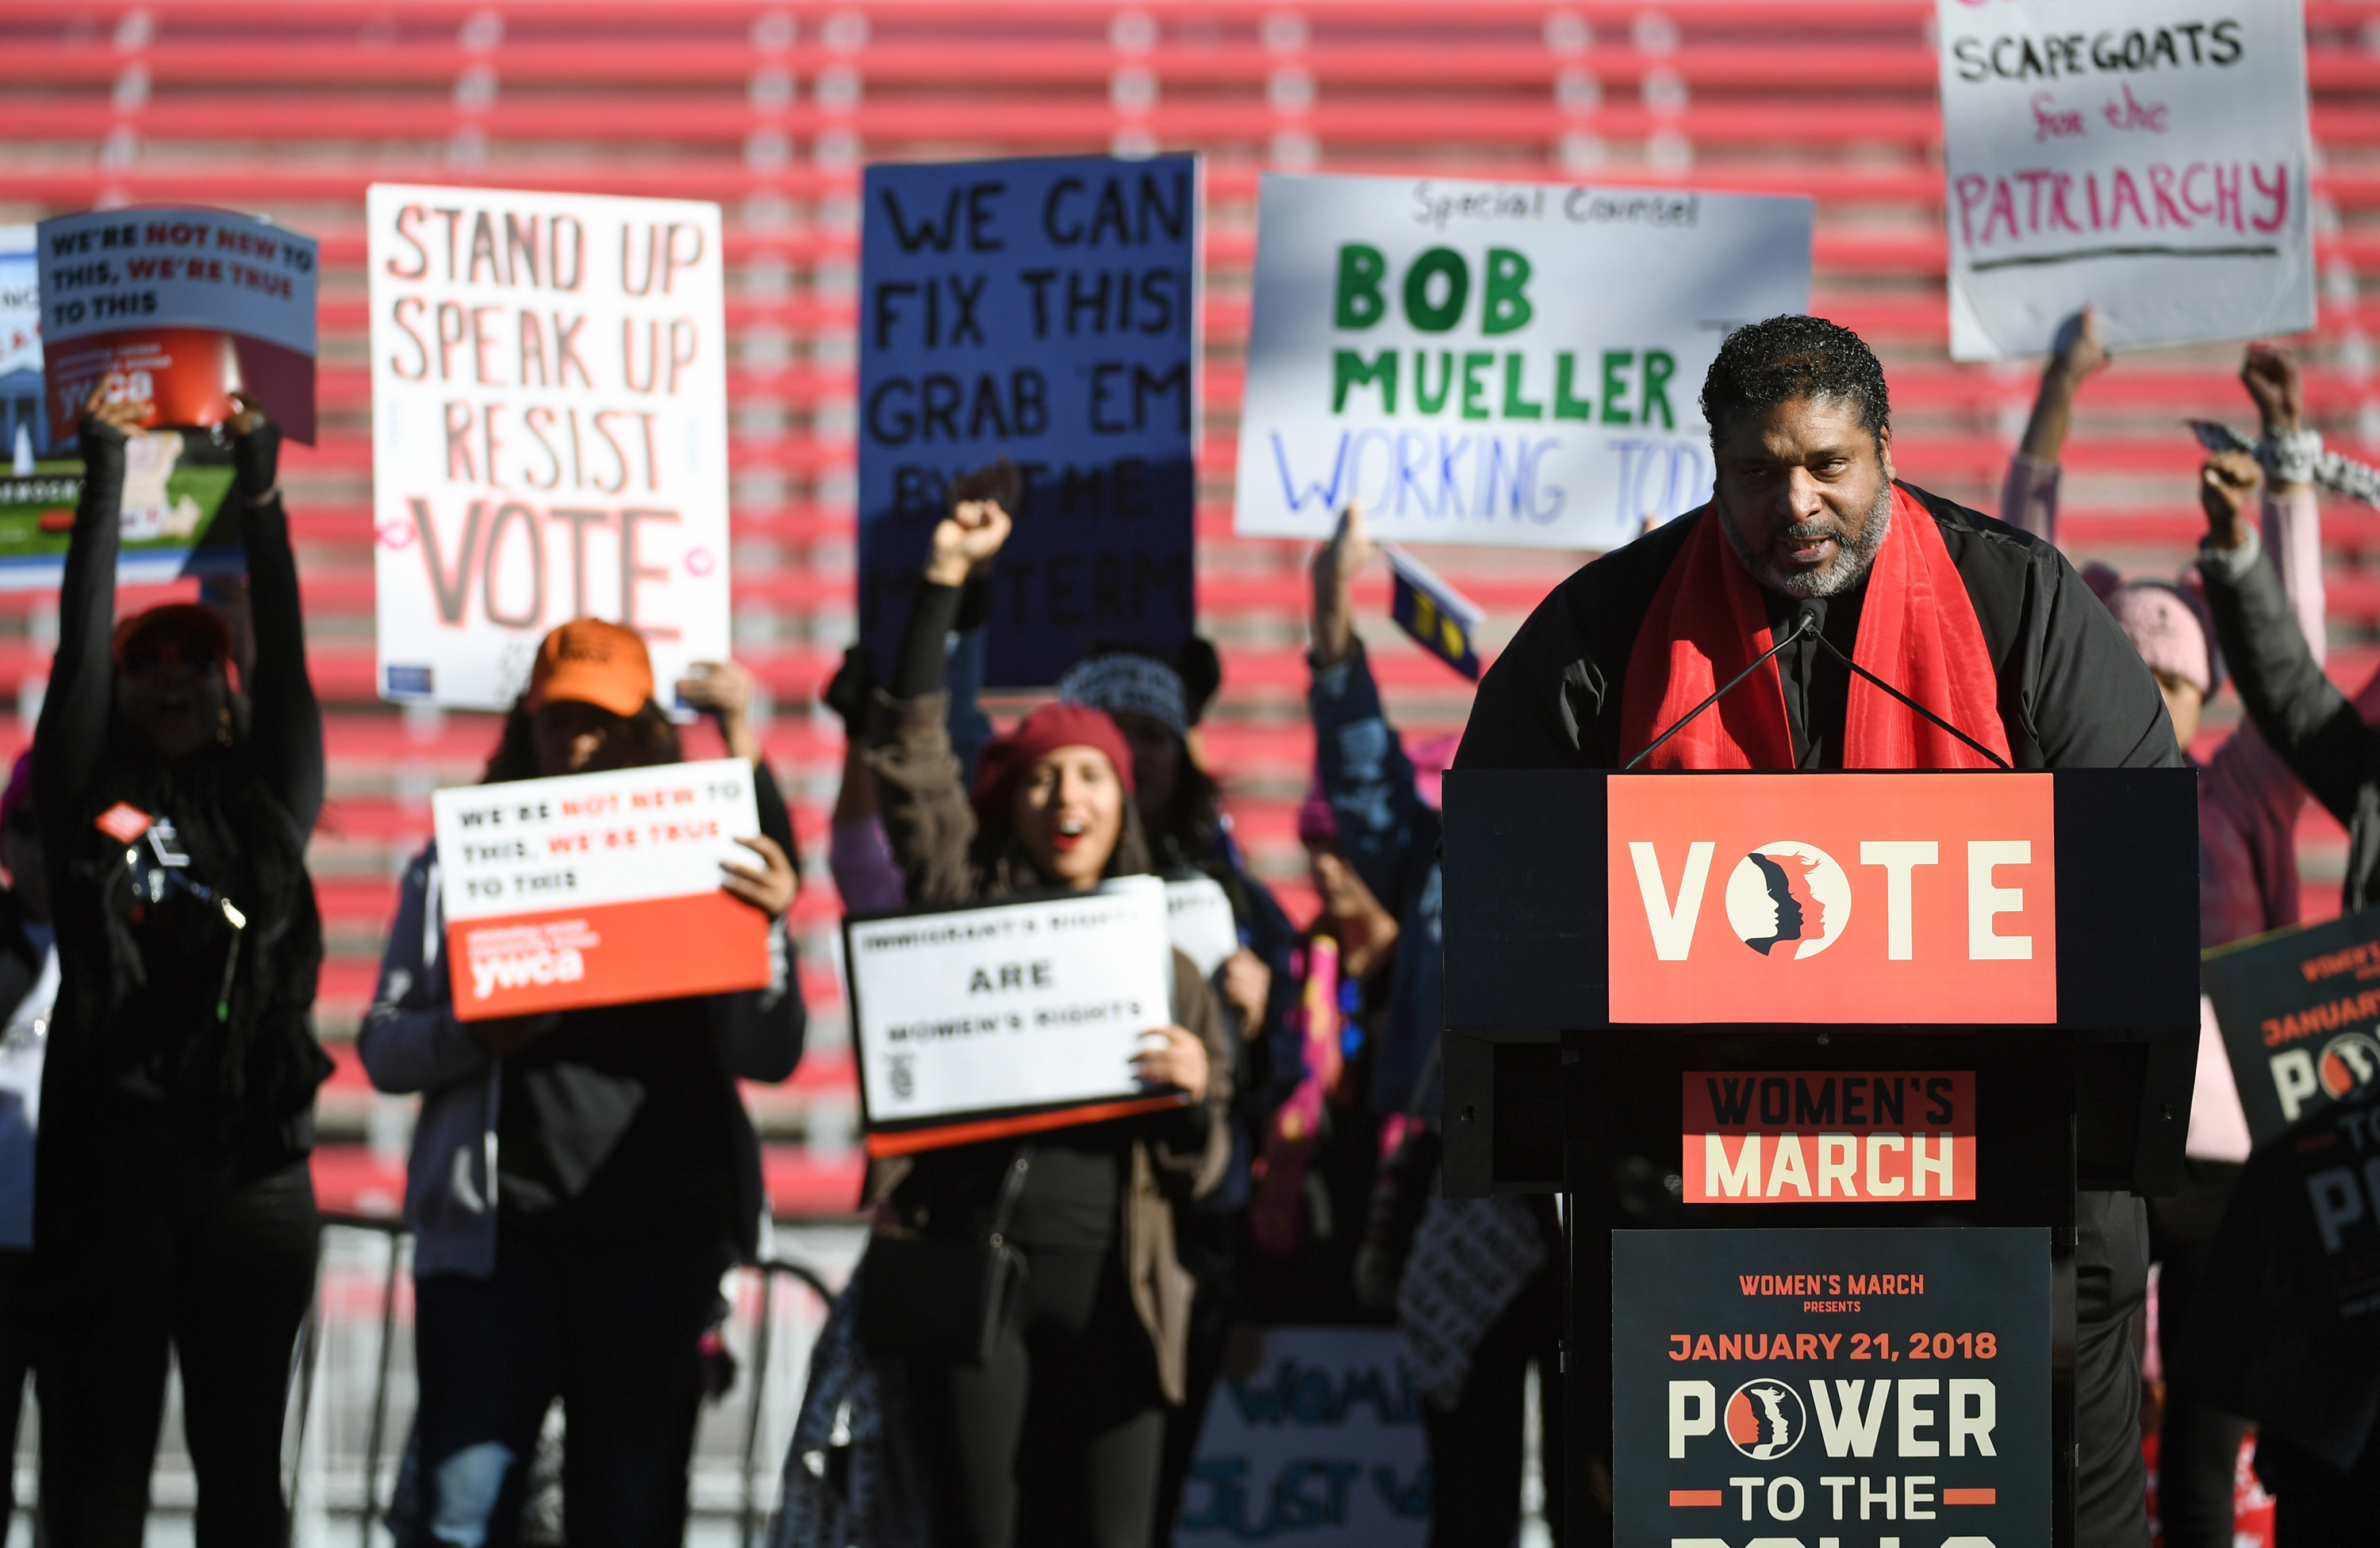 Civil rights activist the Rev. William Barber III speaks during the Women's March 'Power to the Polls' voter registration tour launch at Sam Boyd Stadium on January 21, 2018 in Las Vegas, Nevada. (Photo: Ethan Miller/Getty Images)